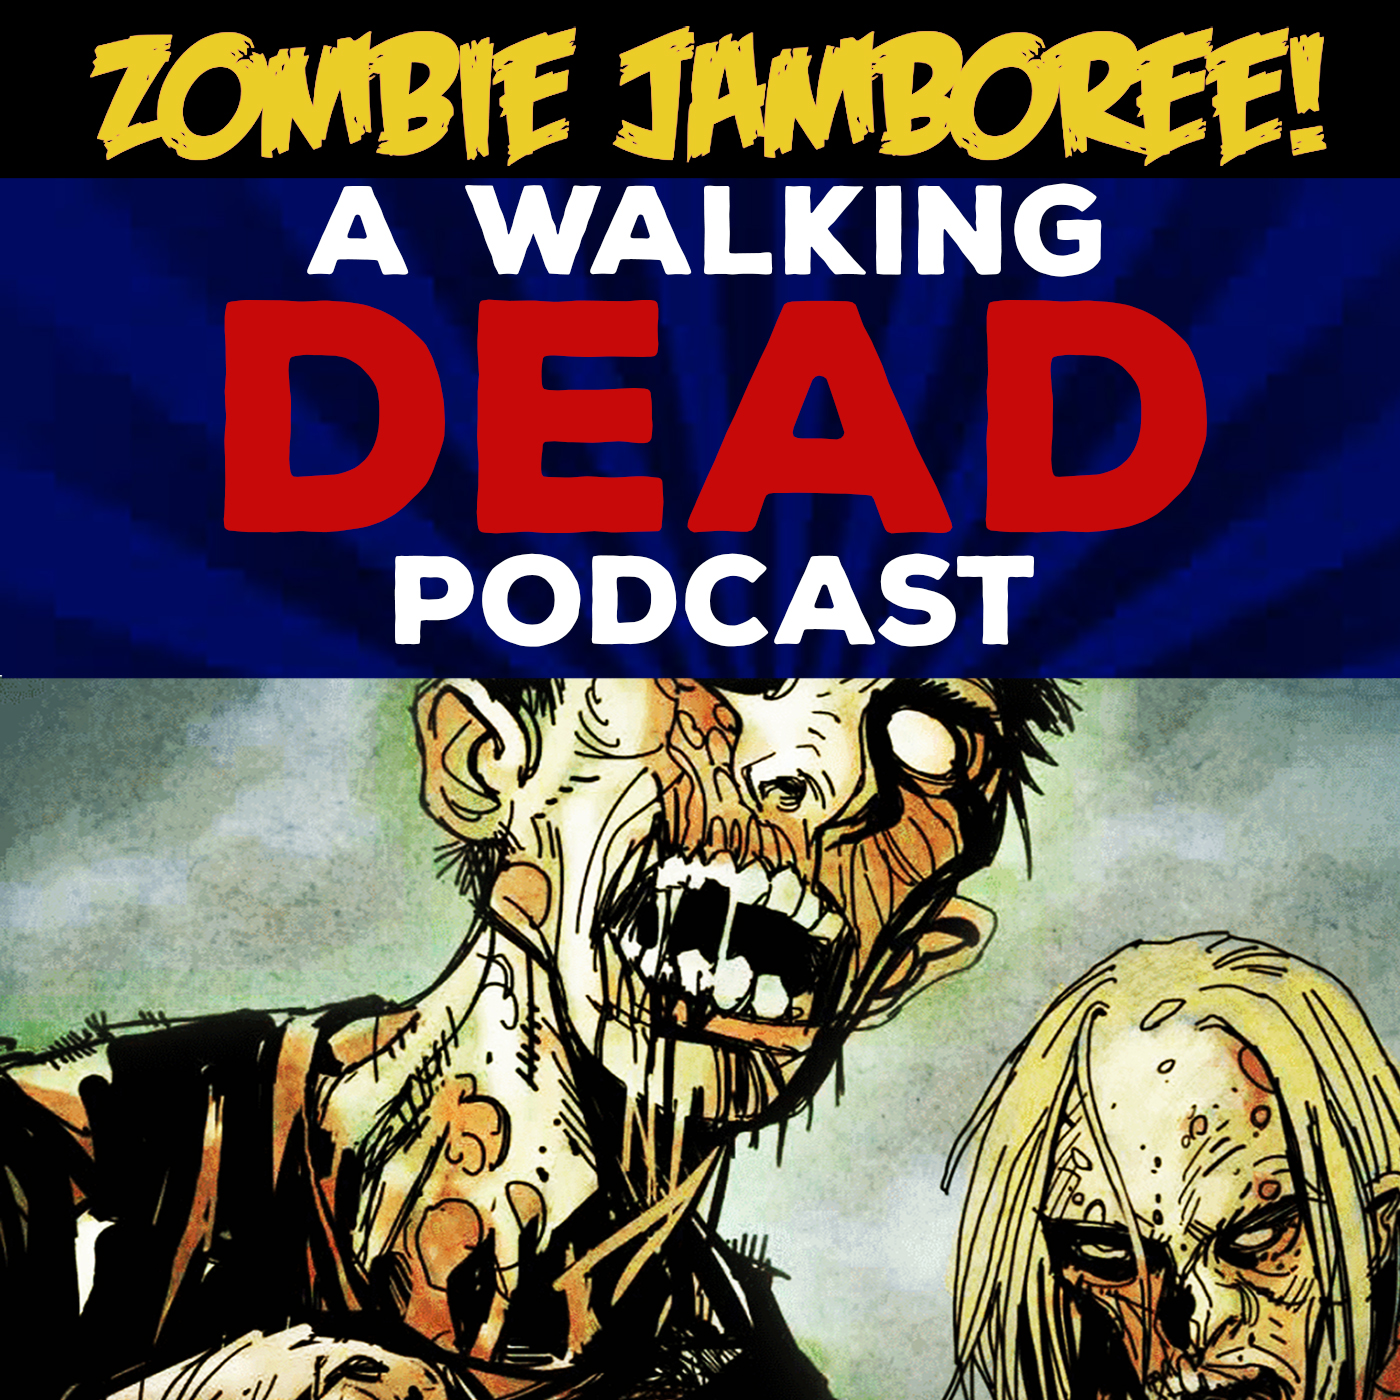 Zombie Jamboree! A Walking Dead Podcast